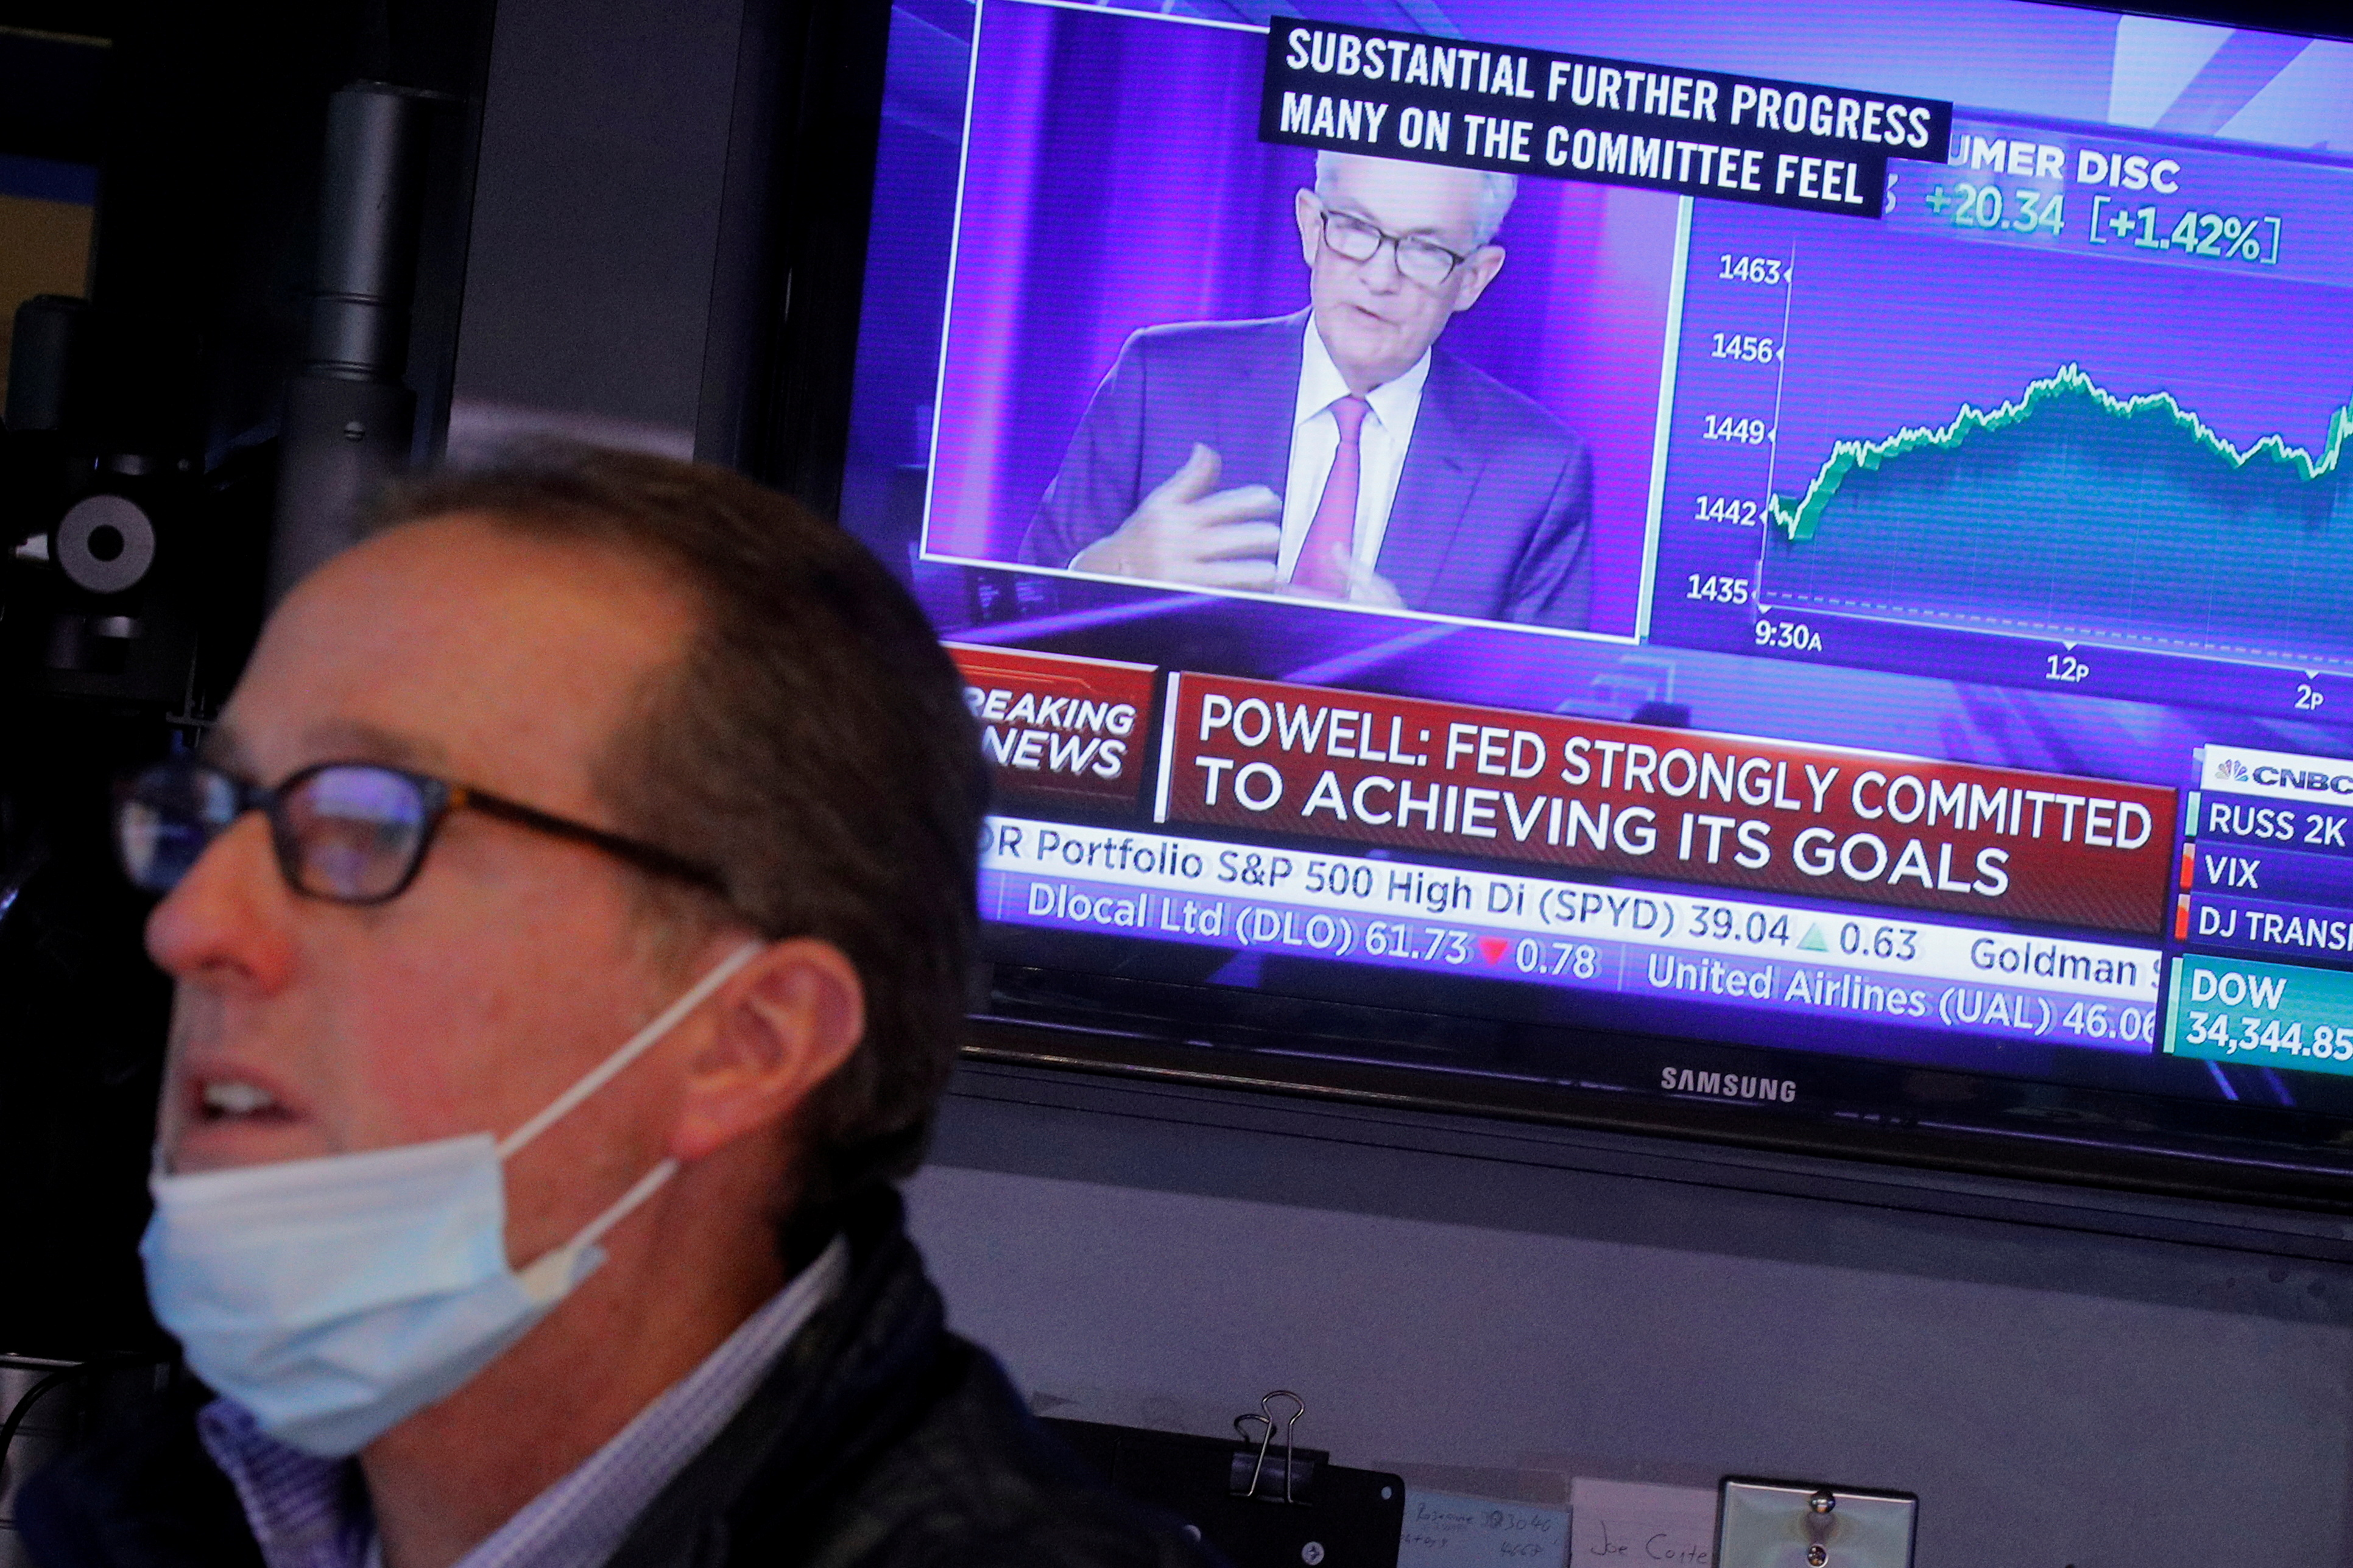 A screen displays a statement by Federal Reserve Chair Jerome Powell following the U.S. Federal Reserve's announcement as a trader works on the trading floor of the New York Stock Exchange (NYSE) in New York City, U.S., September 22, 2021.  REUTERS/Brendan McDermid/File Photo